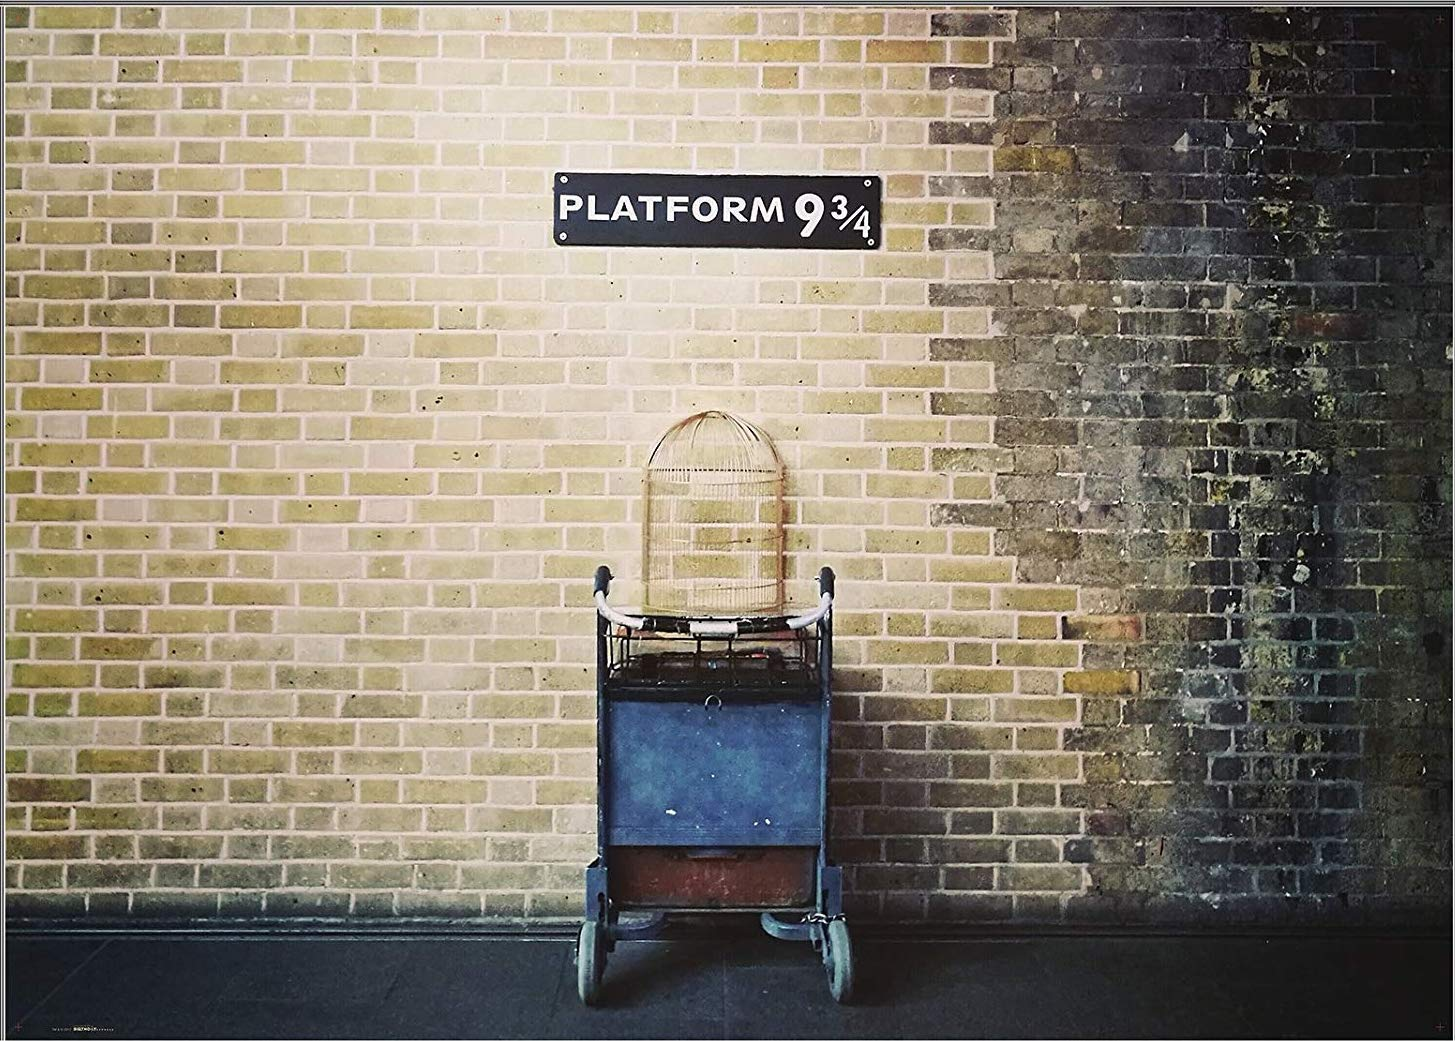 photo of platform 9 and 3/4 in London